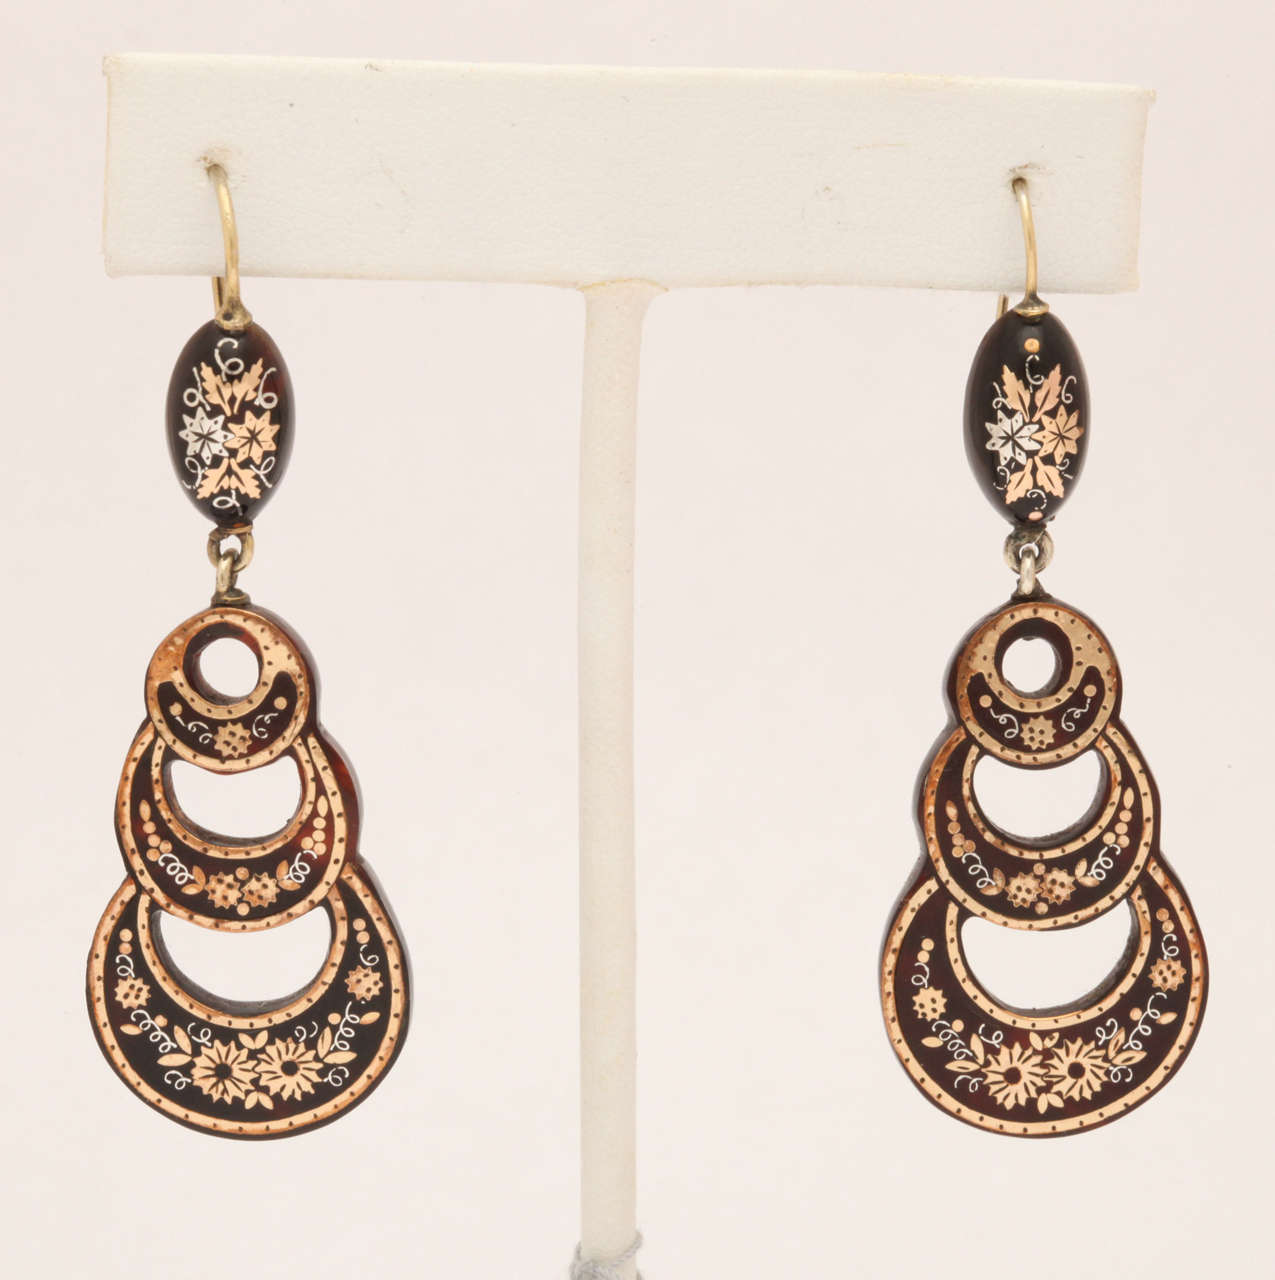 Antique Victorian Pique Earrings In Excellent Condition For Sale In Hastings on Hudson, NY